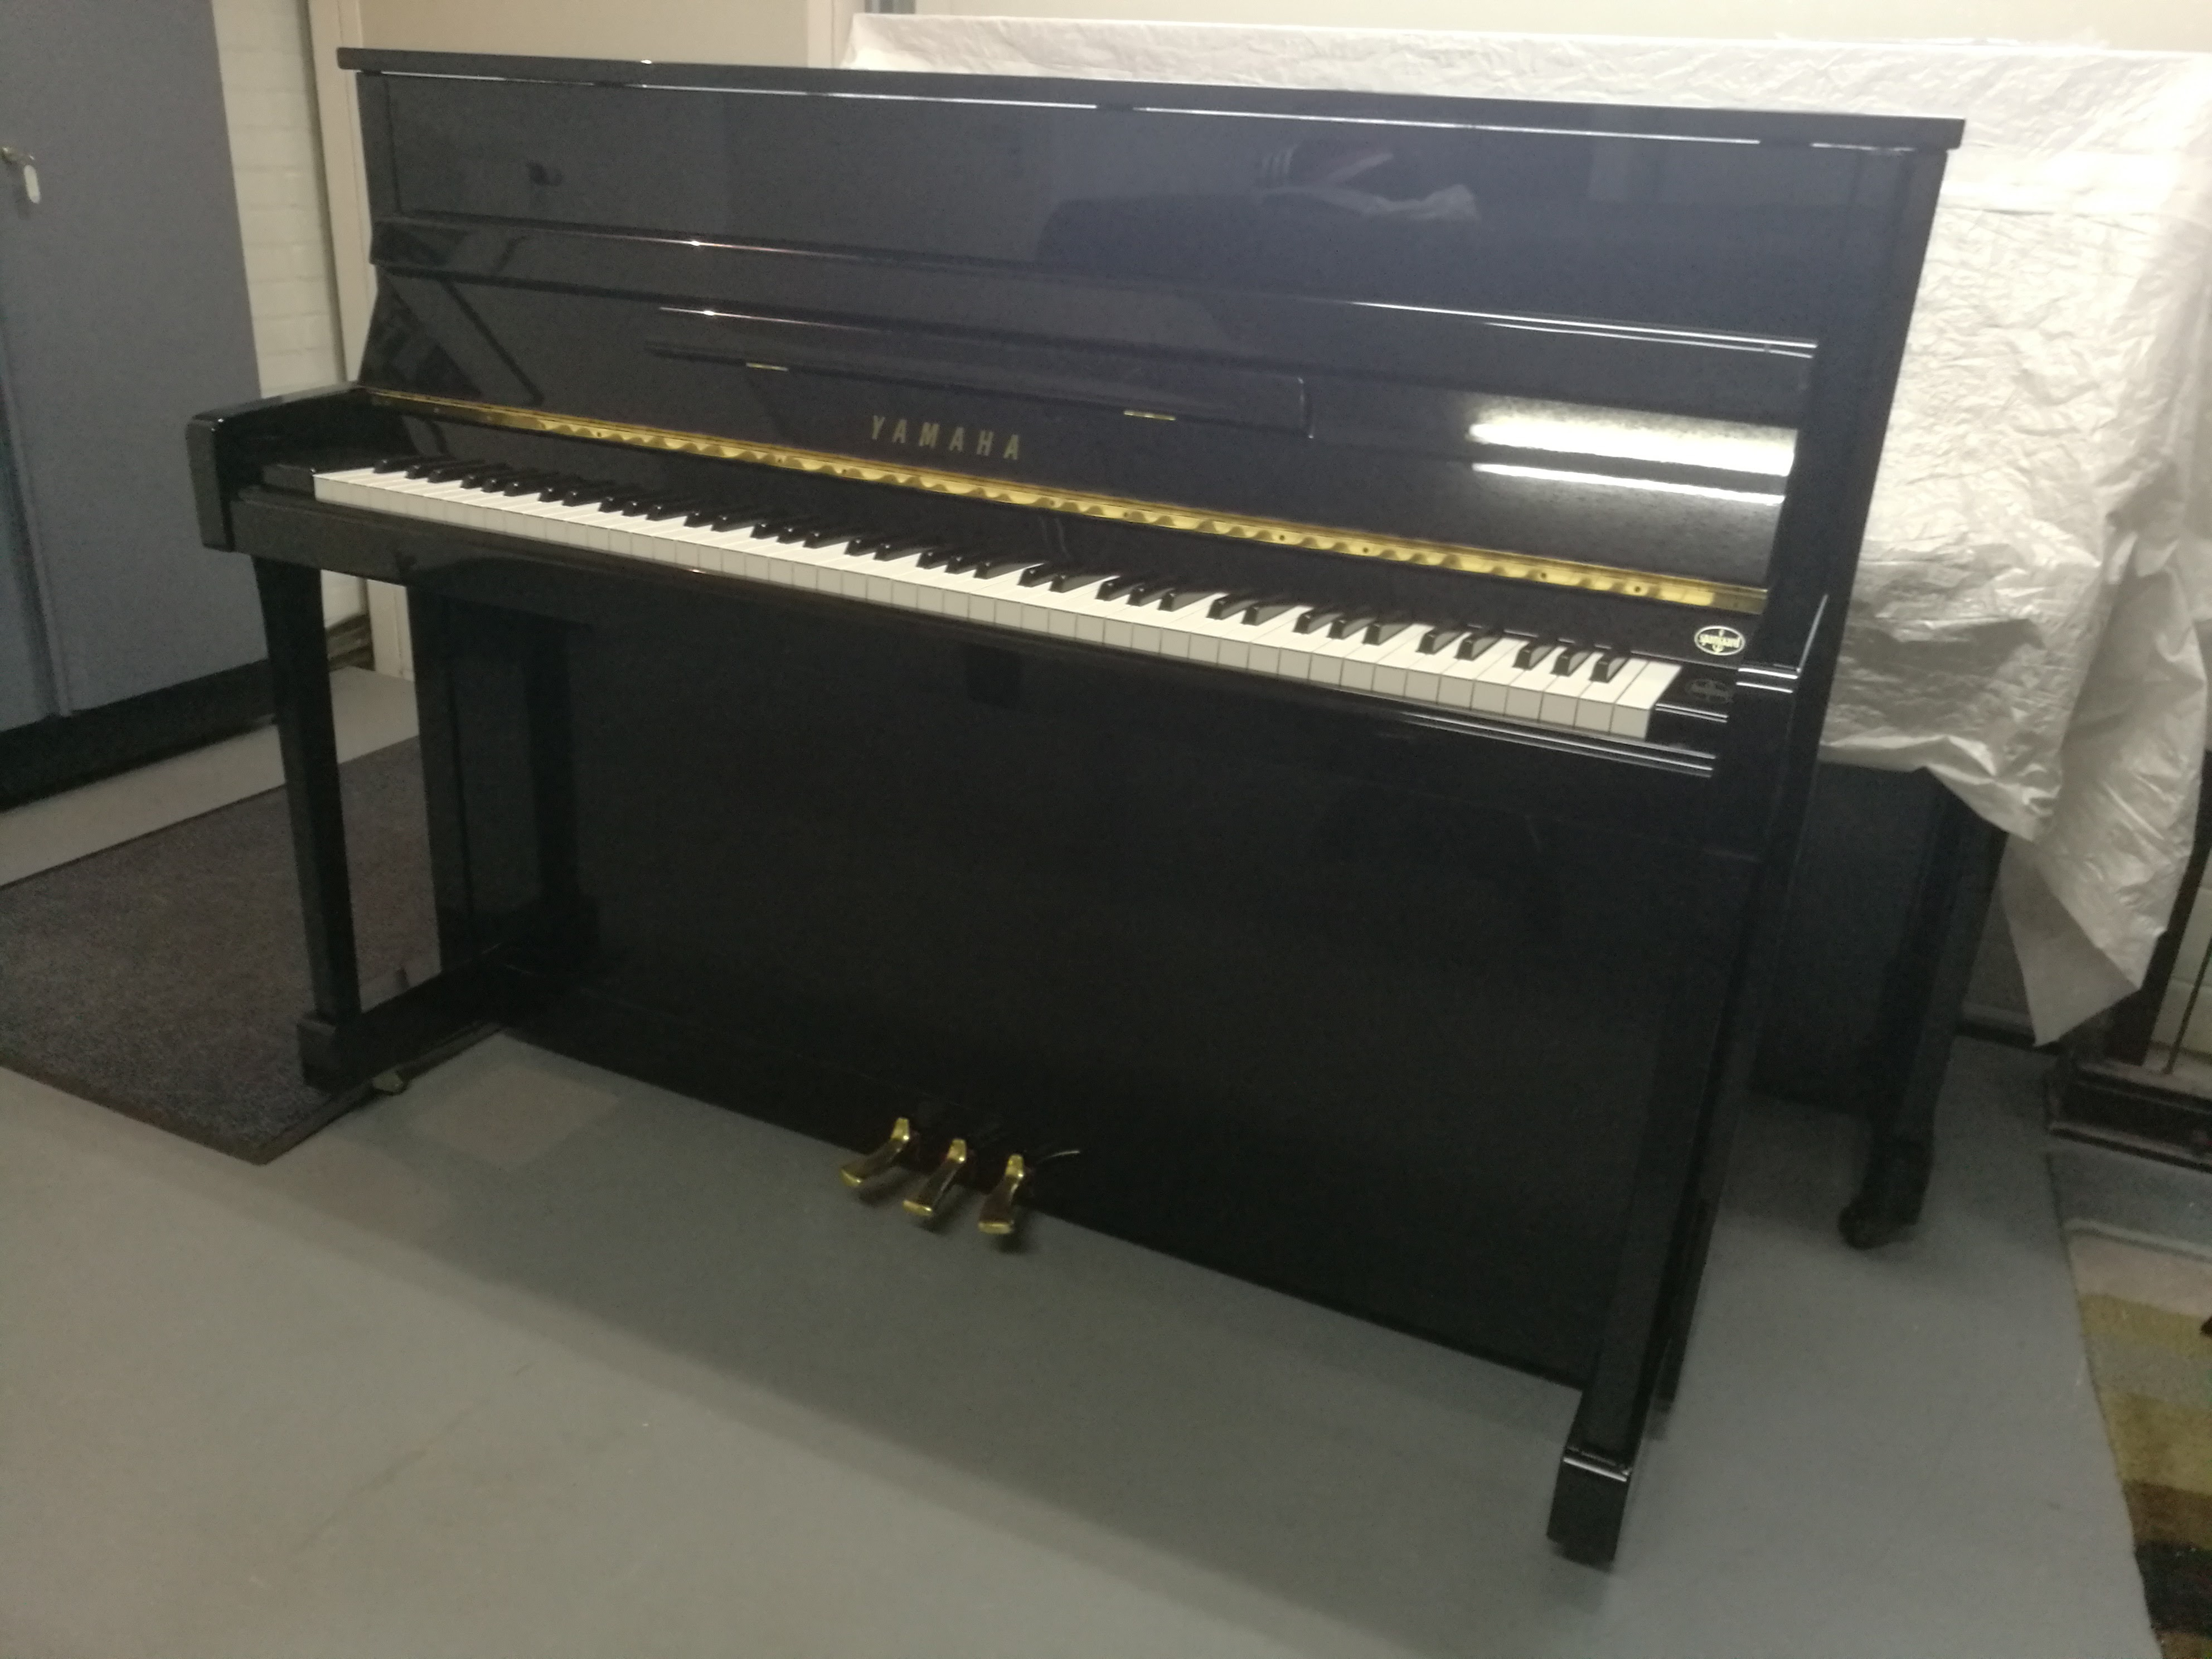 Yamaha piano - slide #2